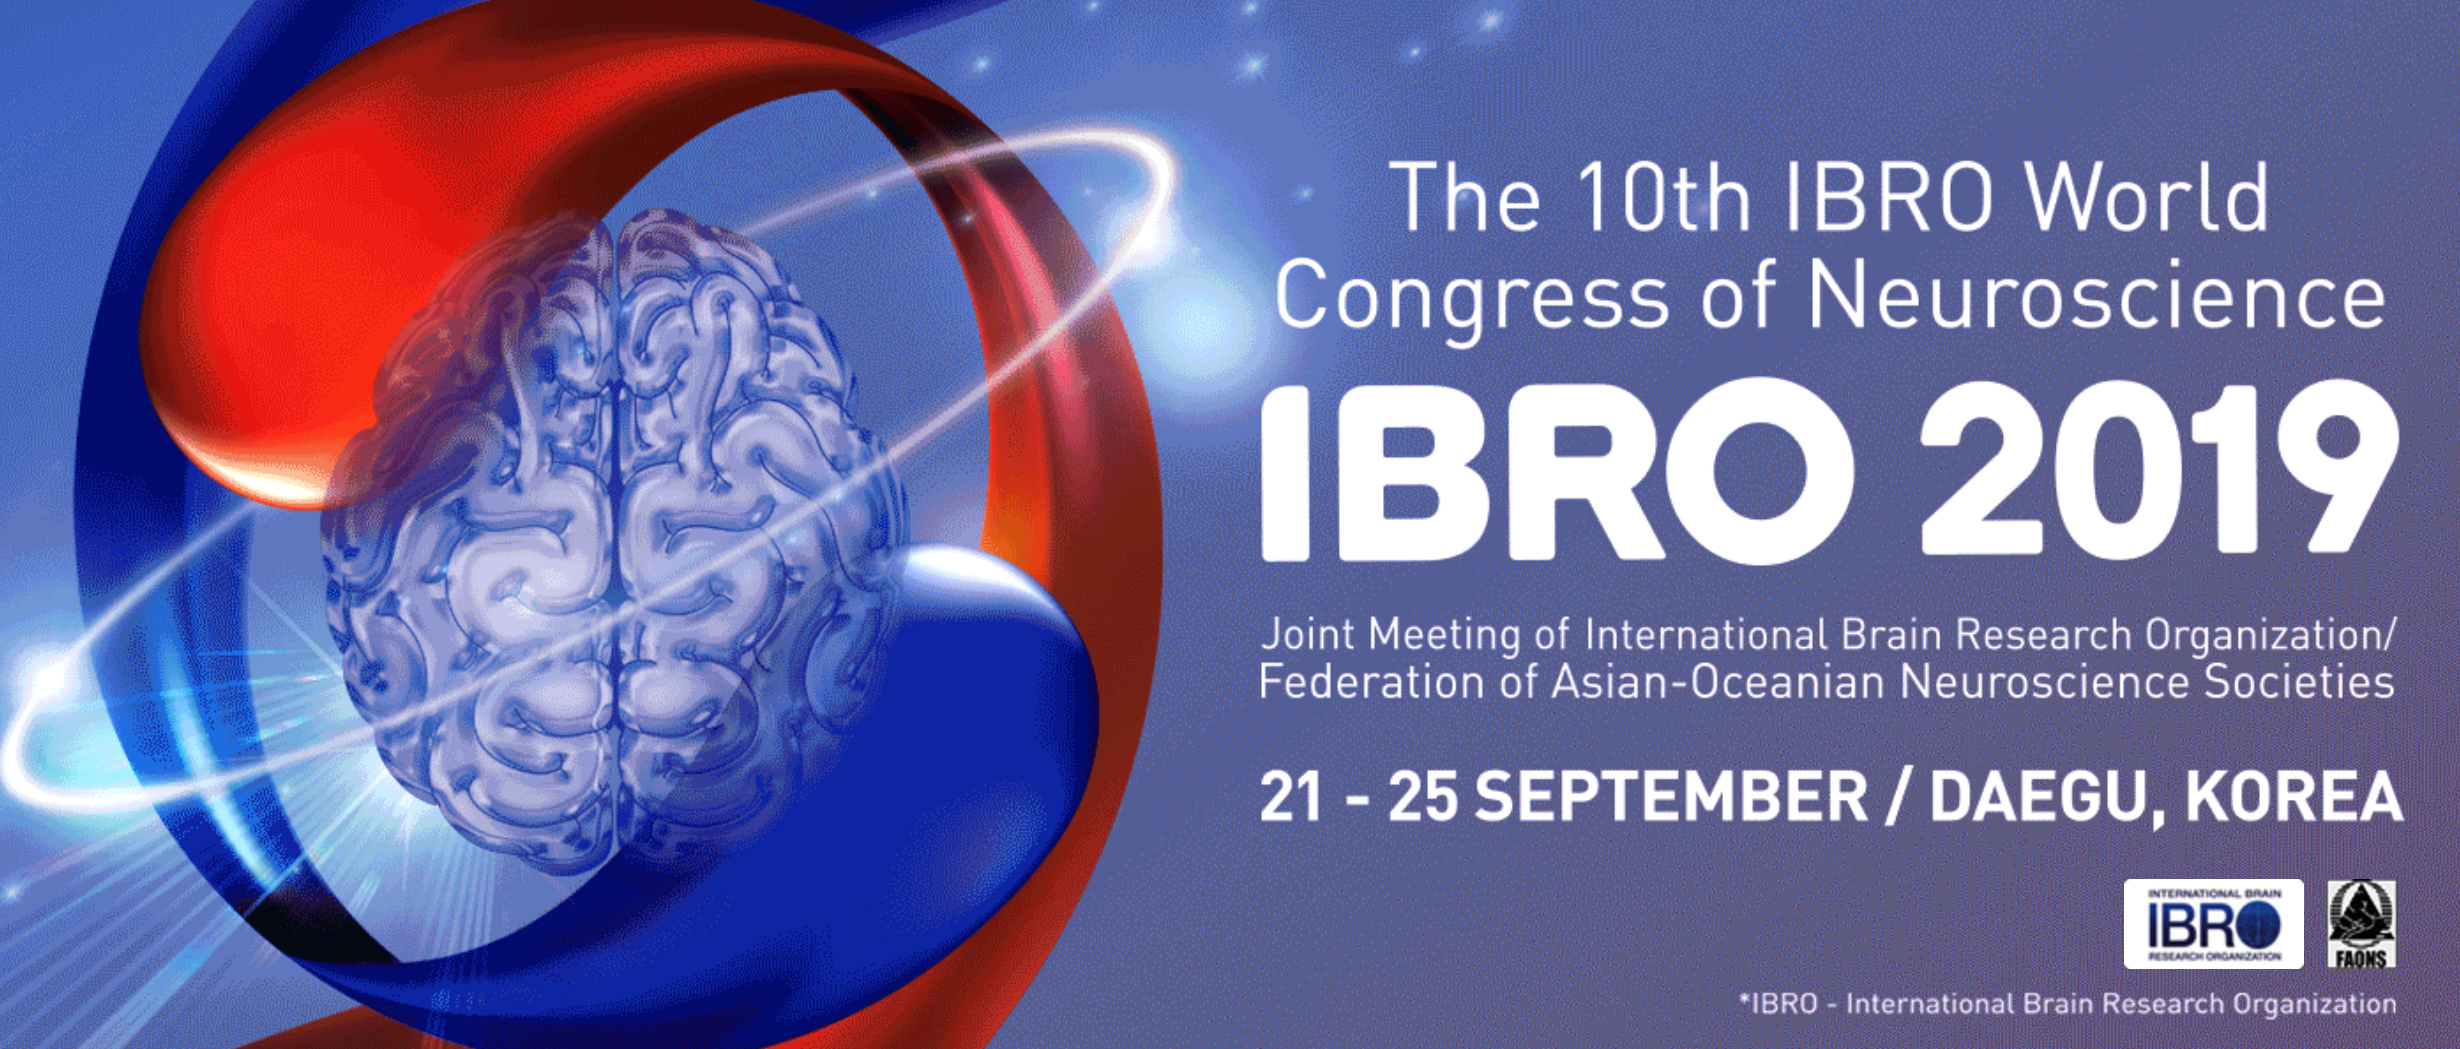 The 10th IBRO World Congress of Neuroscience, 21-25 September 2019, EXCO, Daegu, Korea